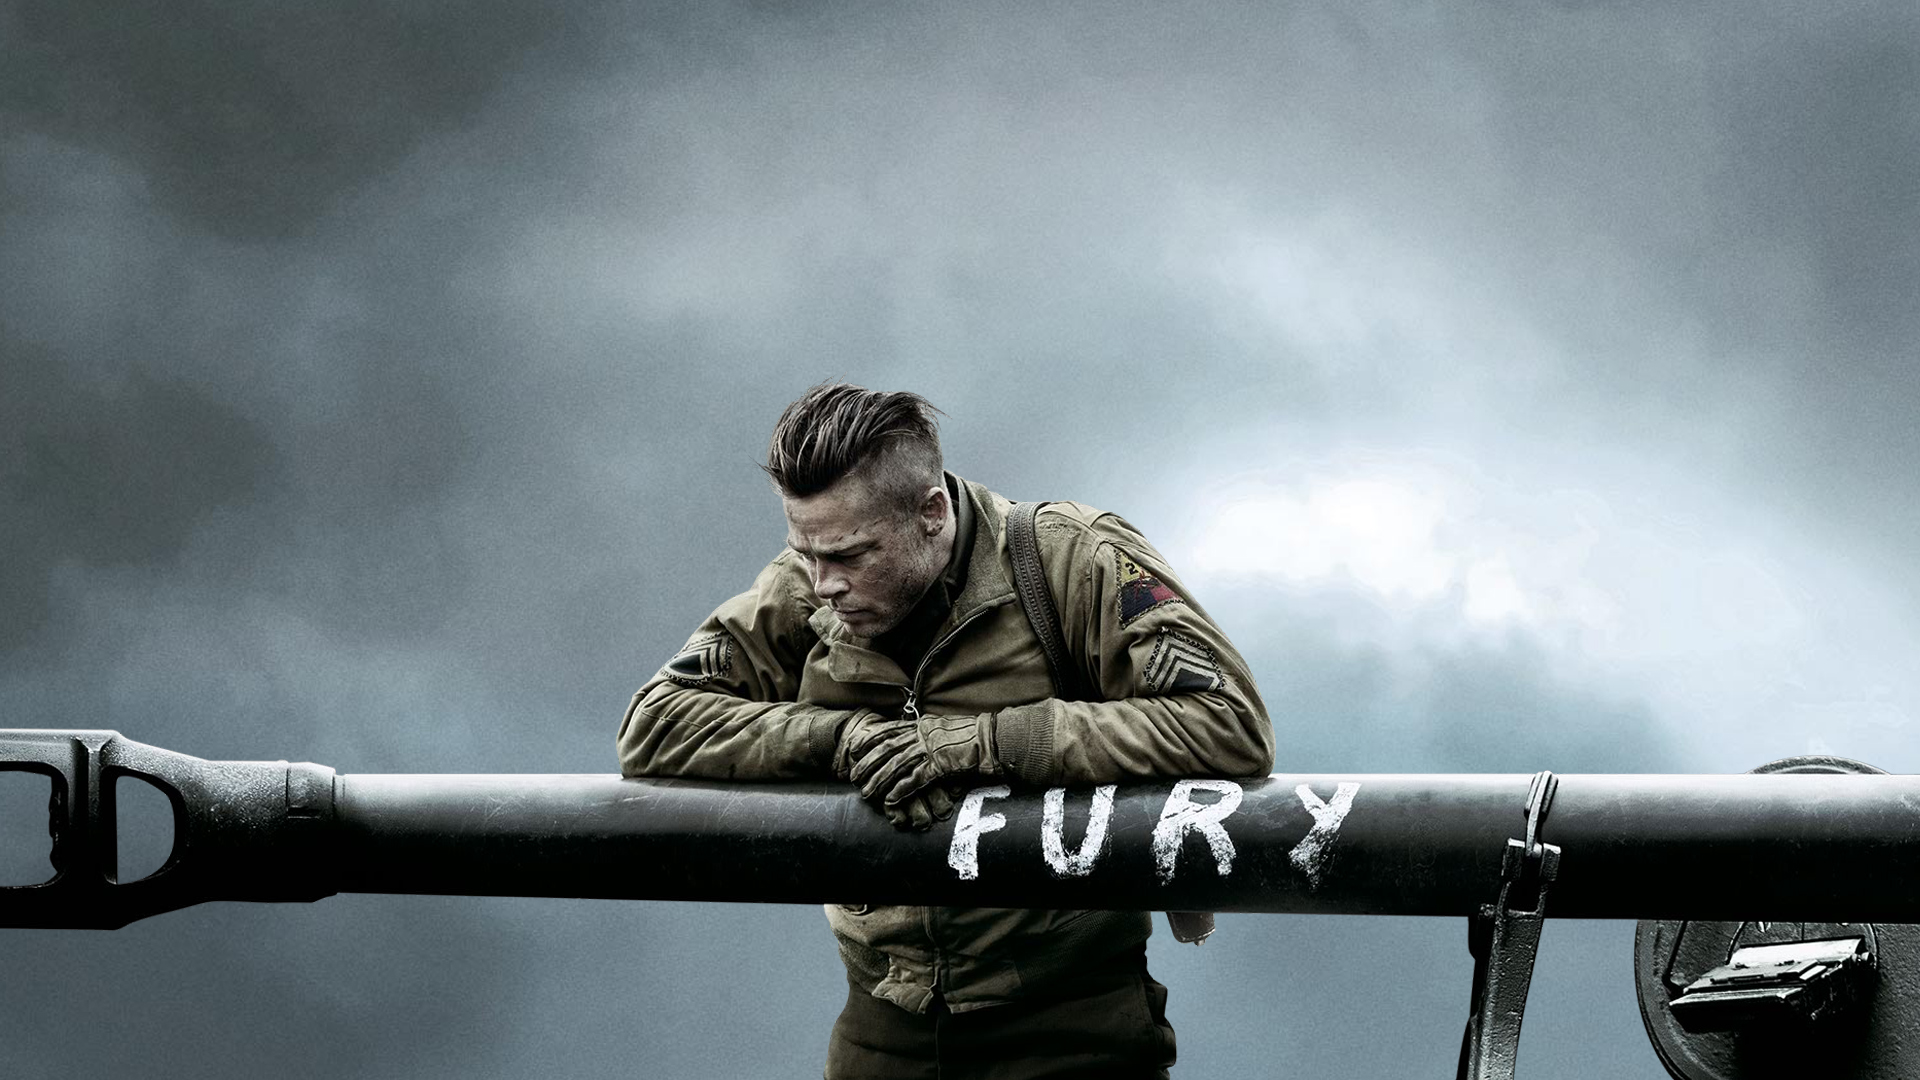 19 Fury HD Wallpapers | Background Images - Wallpaper Abyss